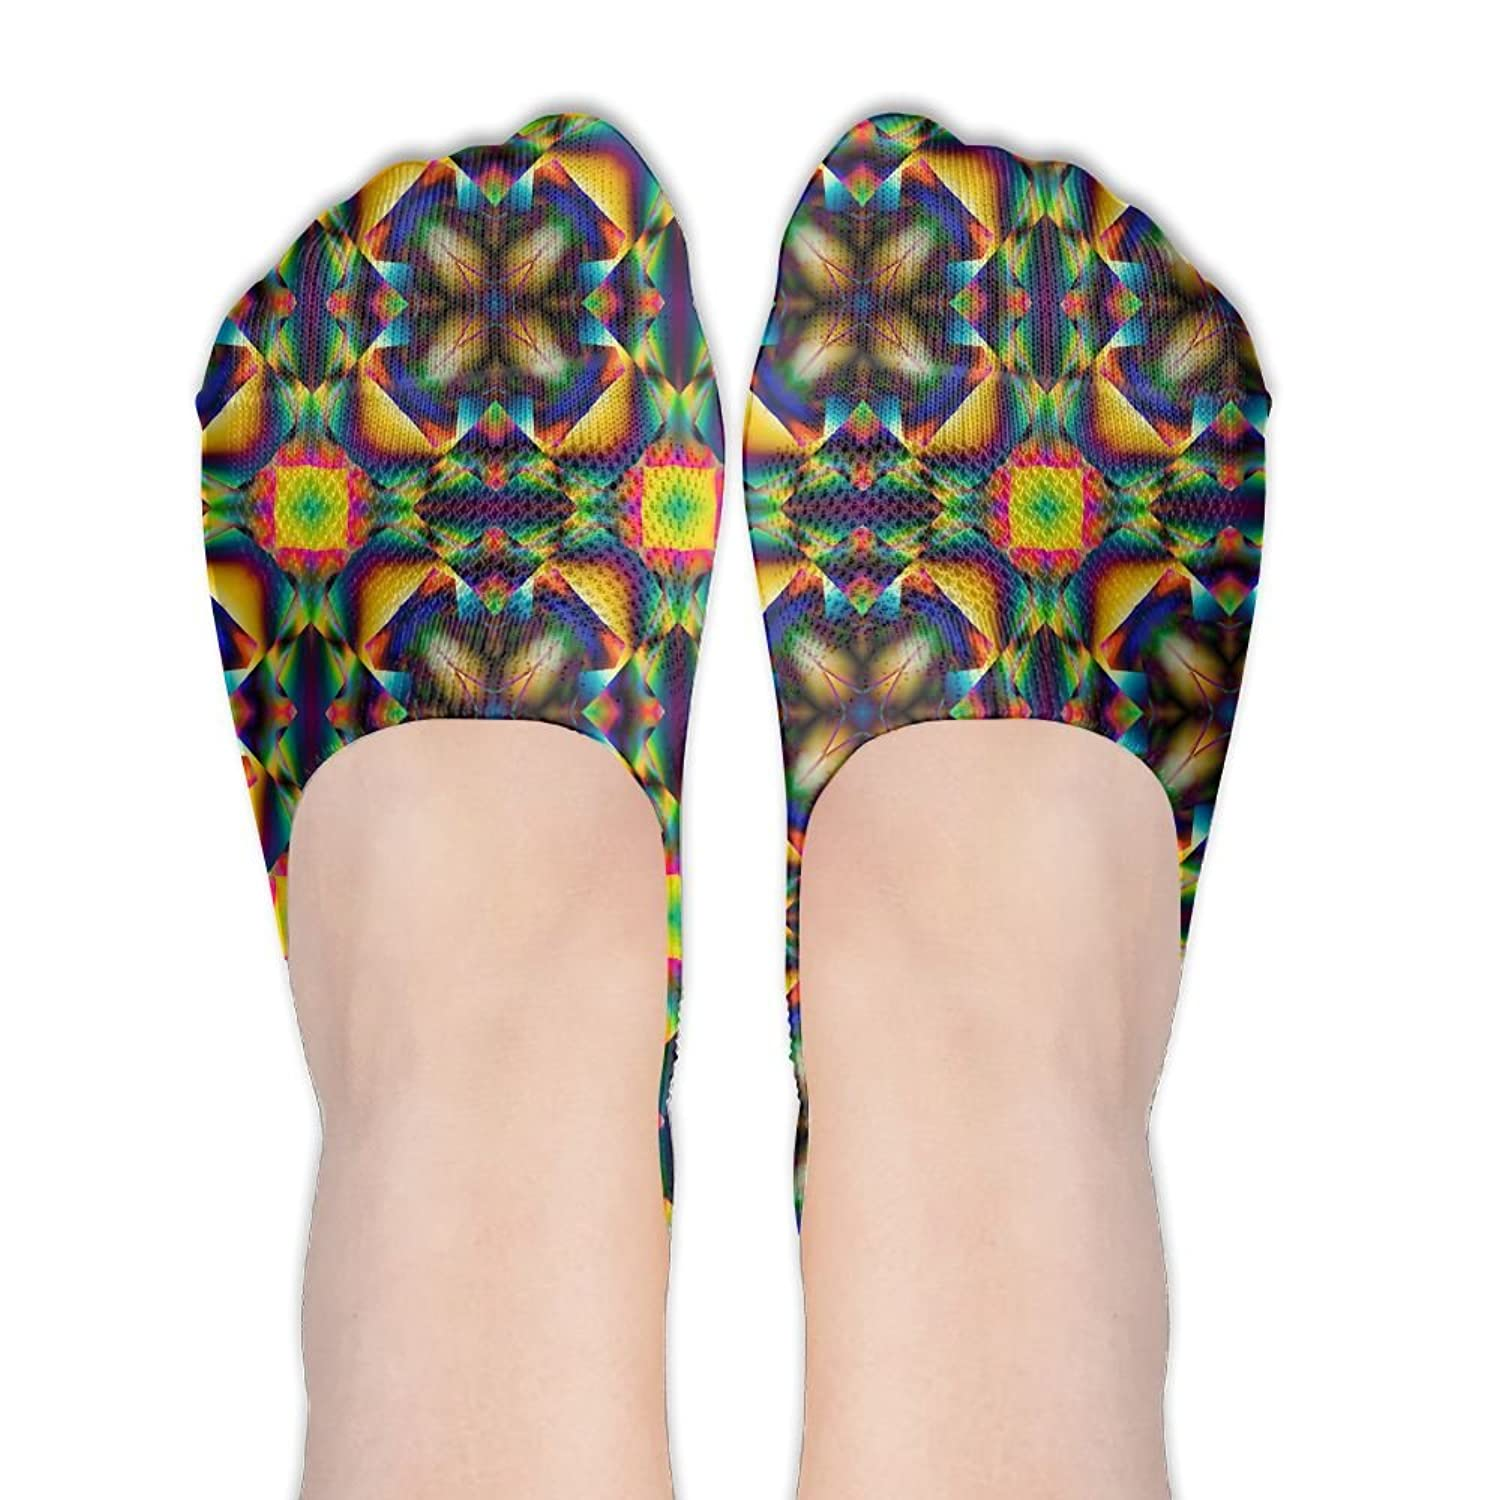 Abstract Kaleidoscope No Show Socks Liner Socks Low Cut Ped Socks Flat Boat Liners For Women